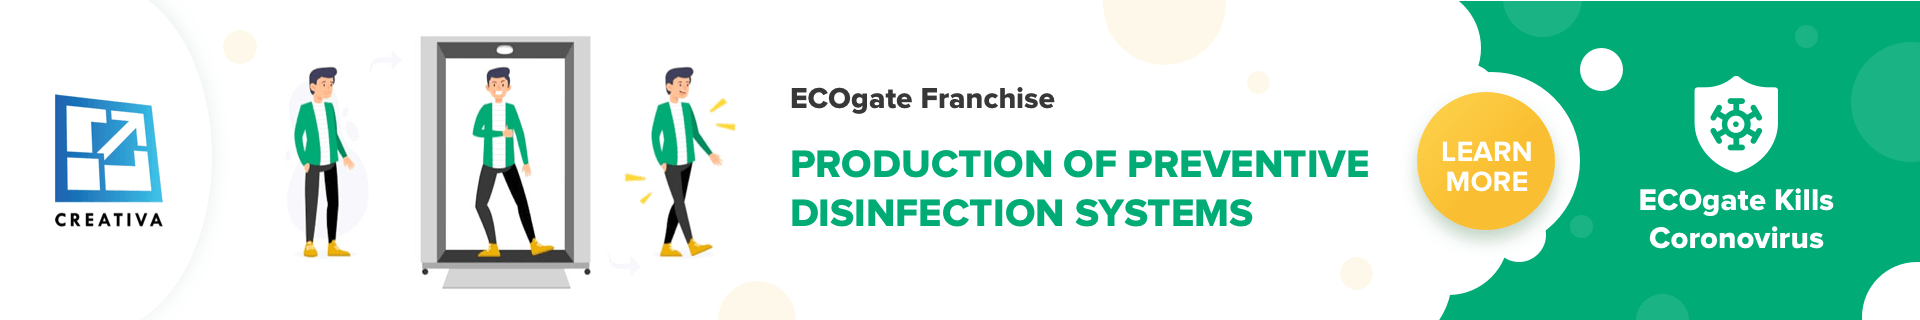 ECOgate Franchise For Sale